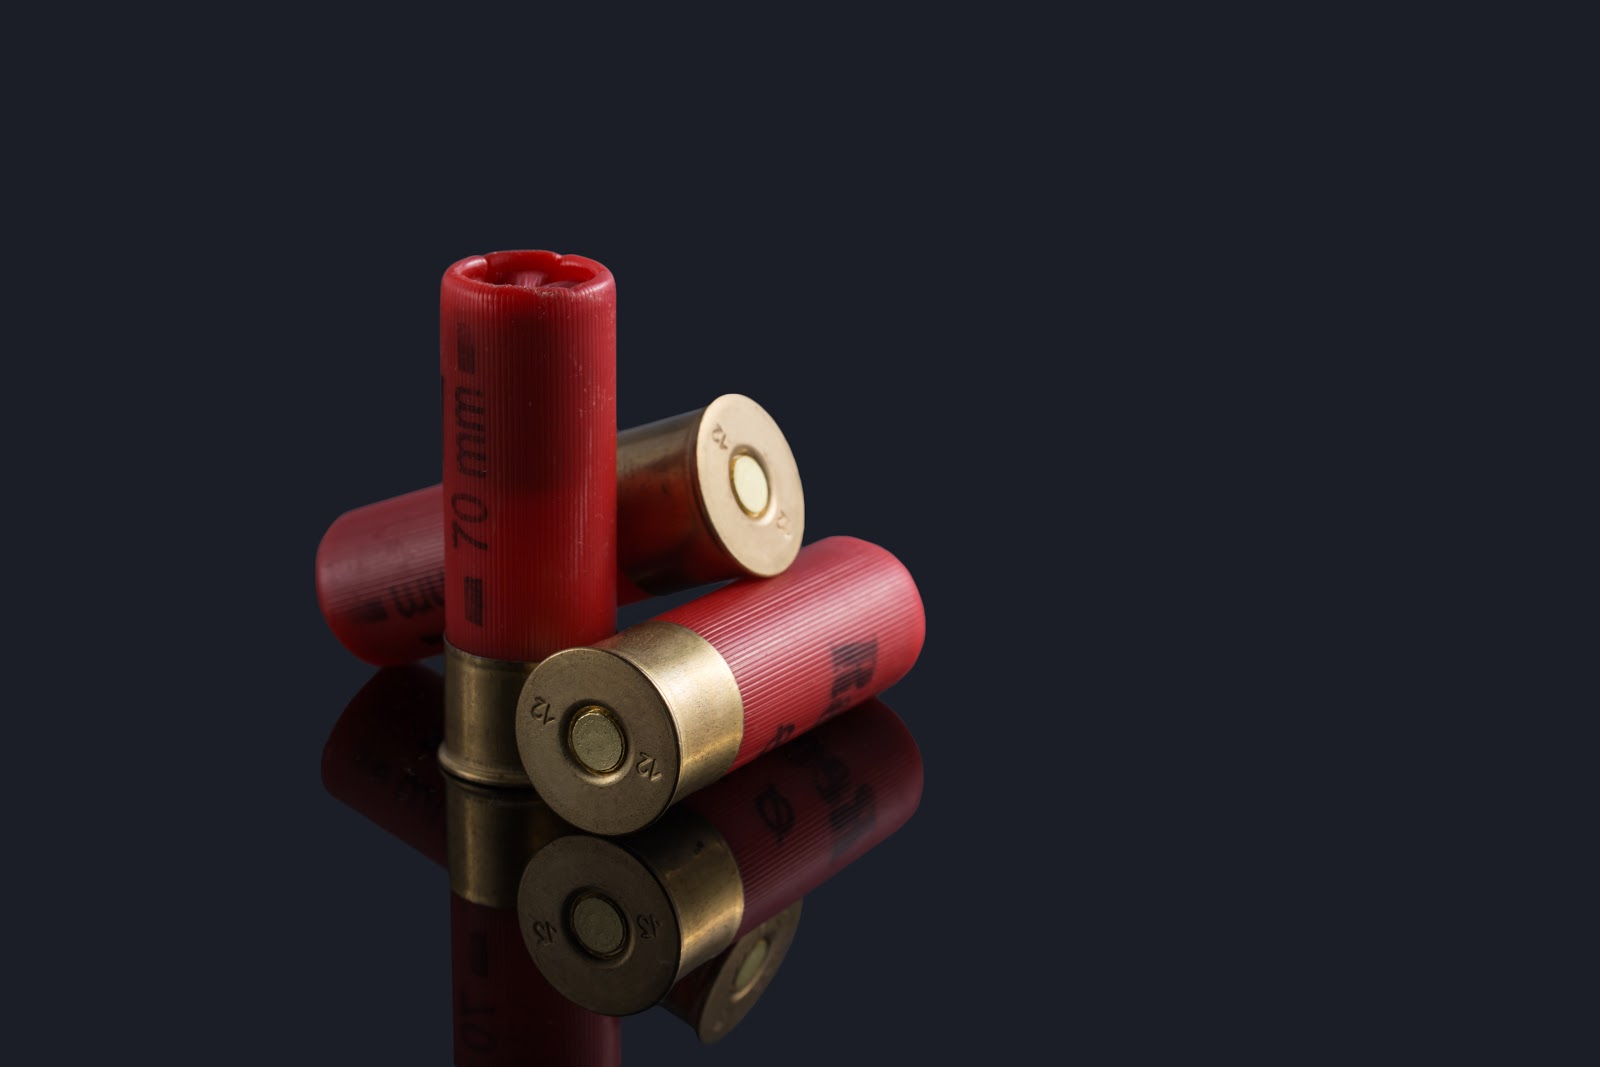 three 70mm red shotgun shells with a black background